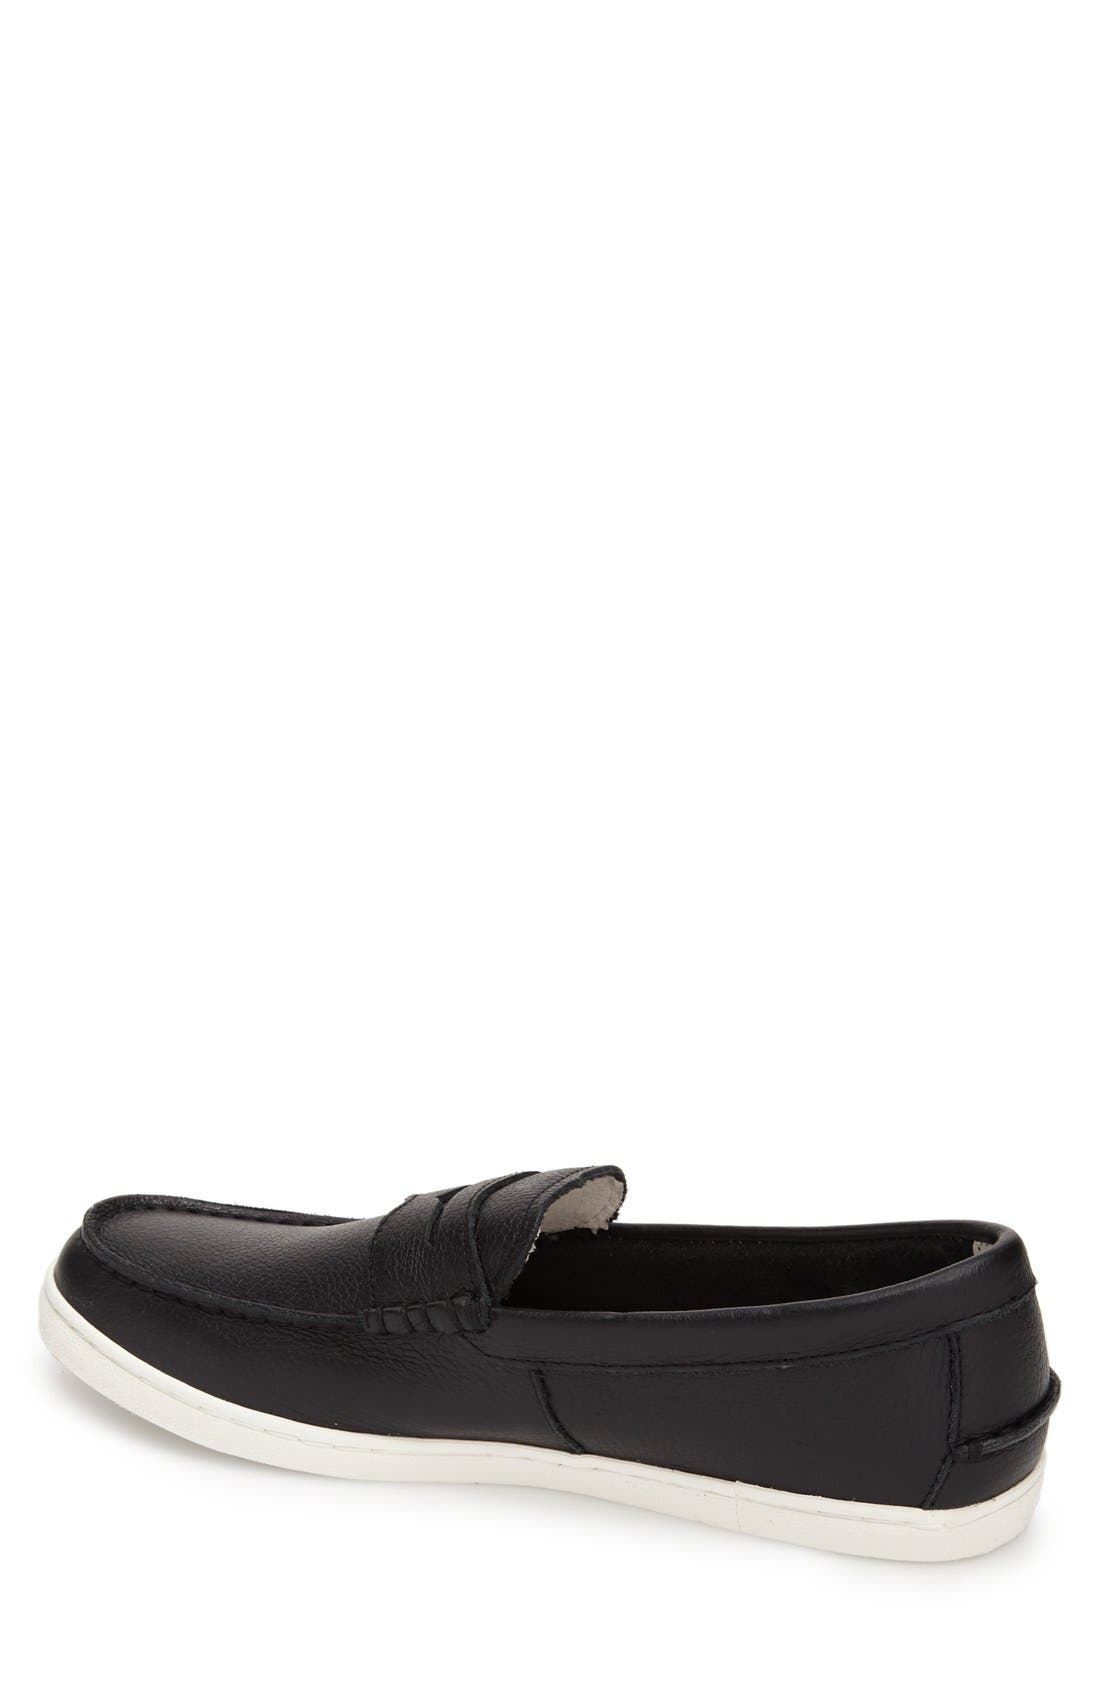 COLE HAAN, 'Pinch' Penny Loafer, Alternate thumbnail 9, color, BLACK LEATHER/ WHITE